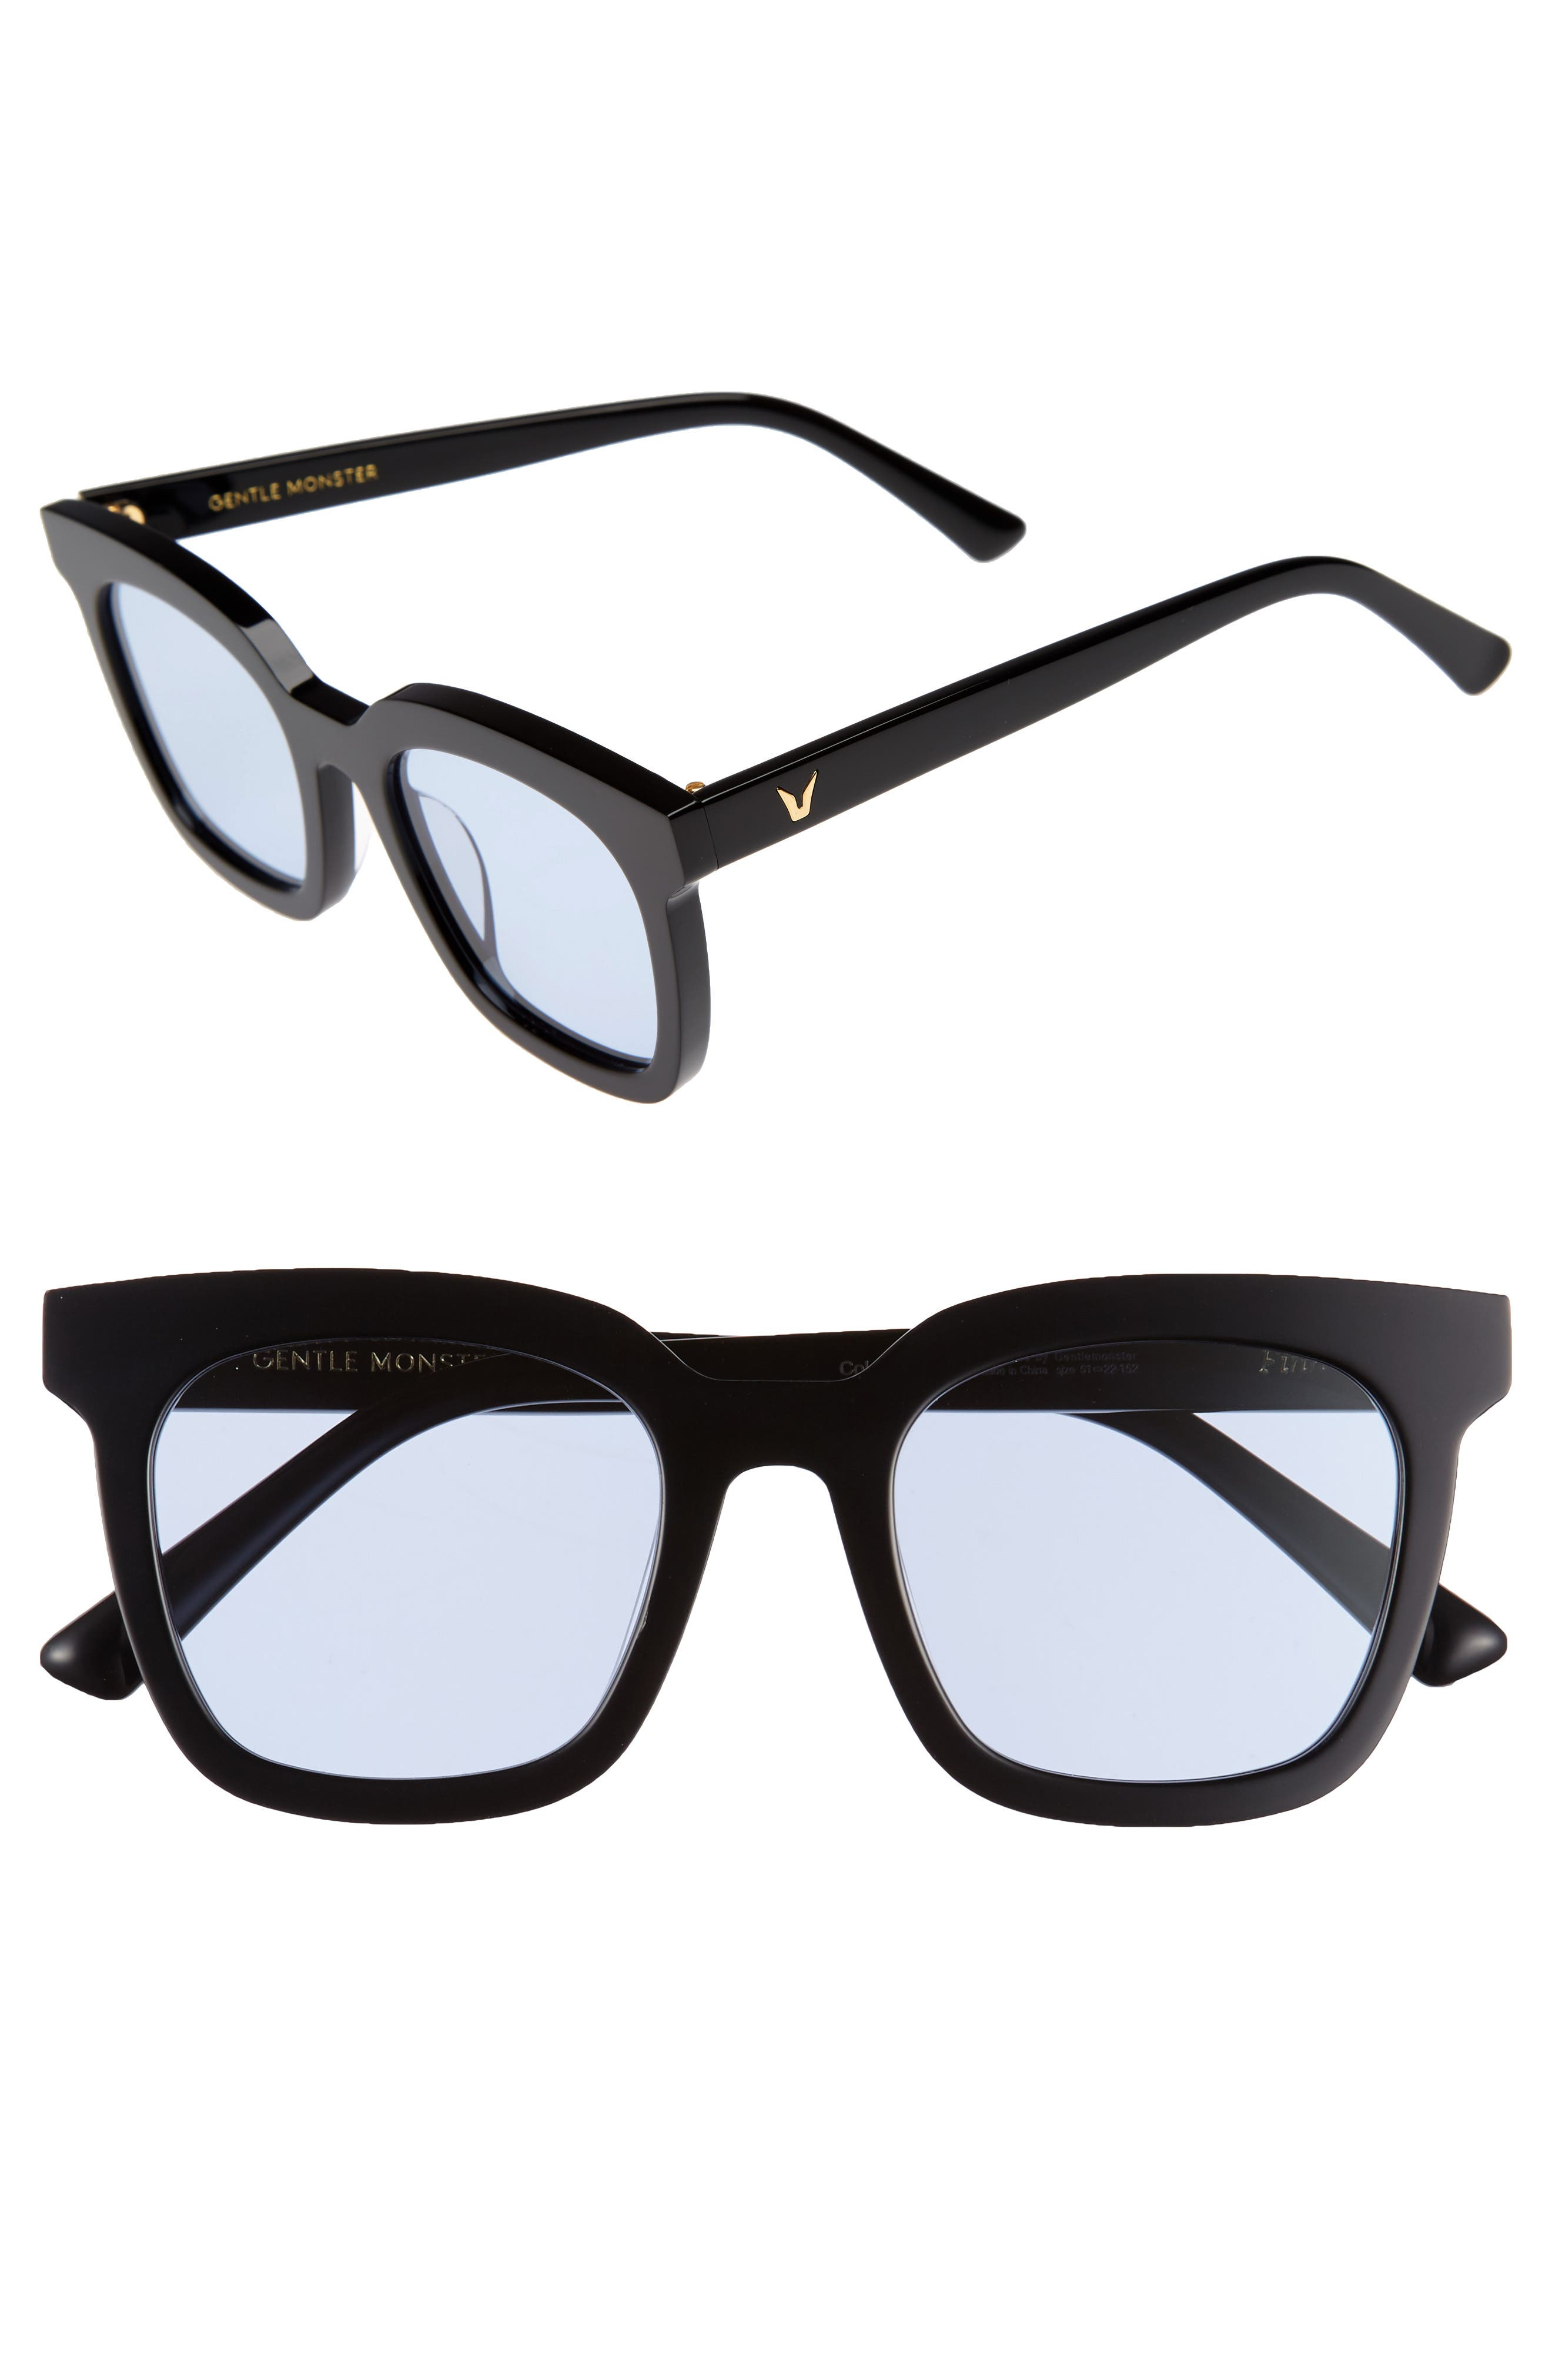 GENTLE MONSTER Finn 51mm Sunglasses